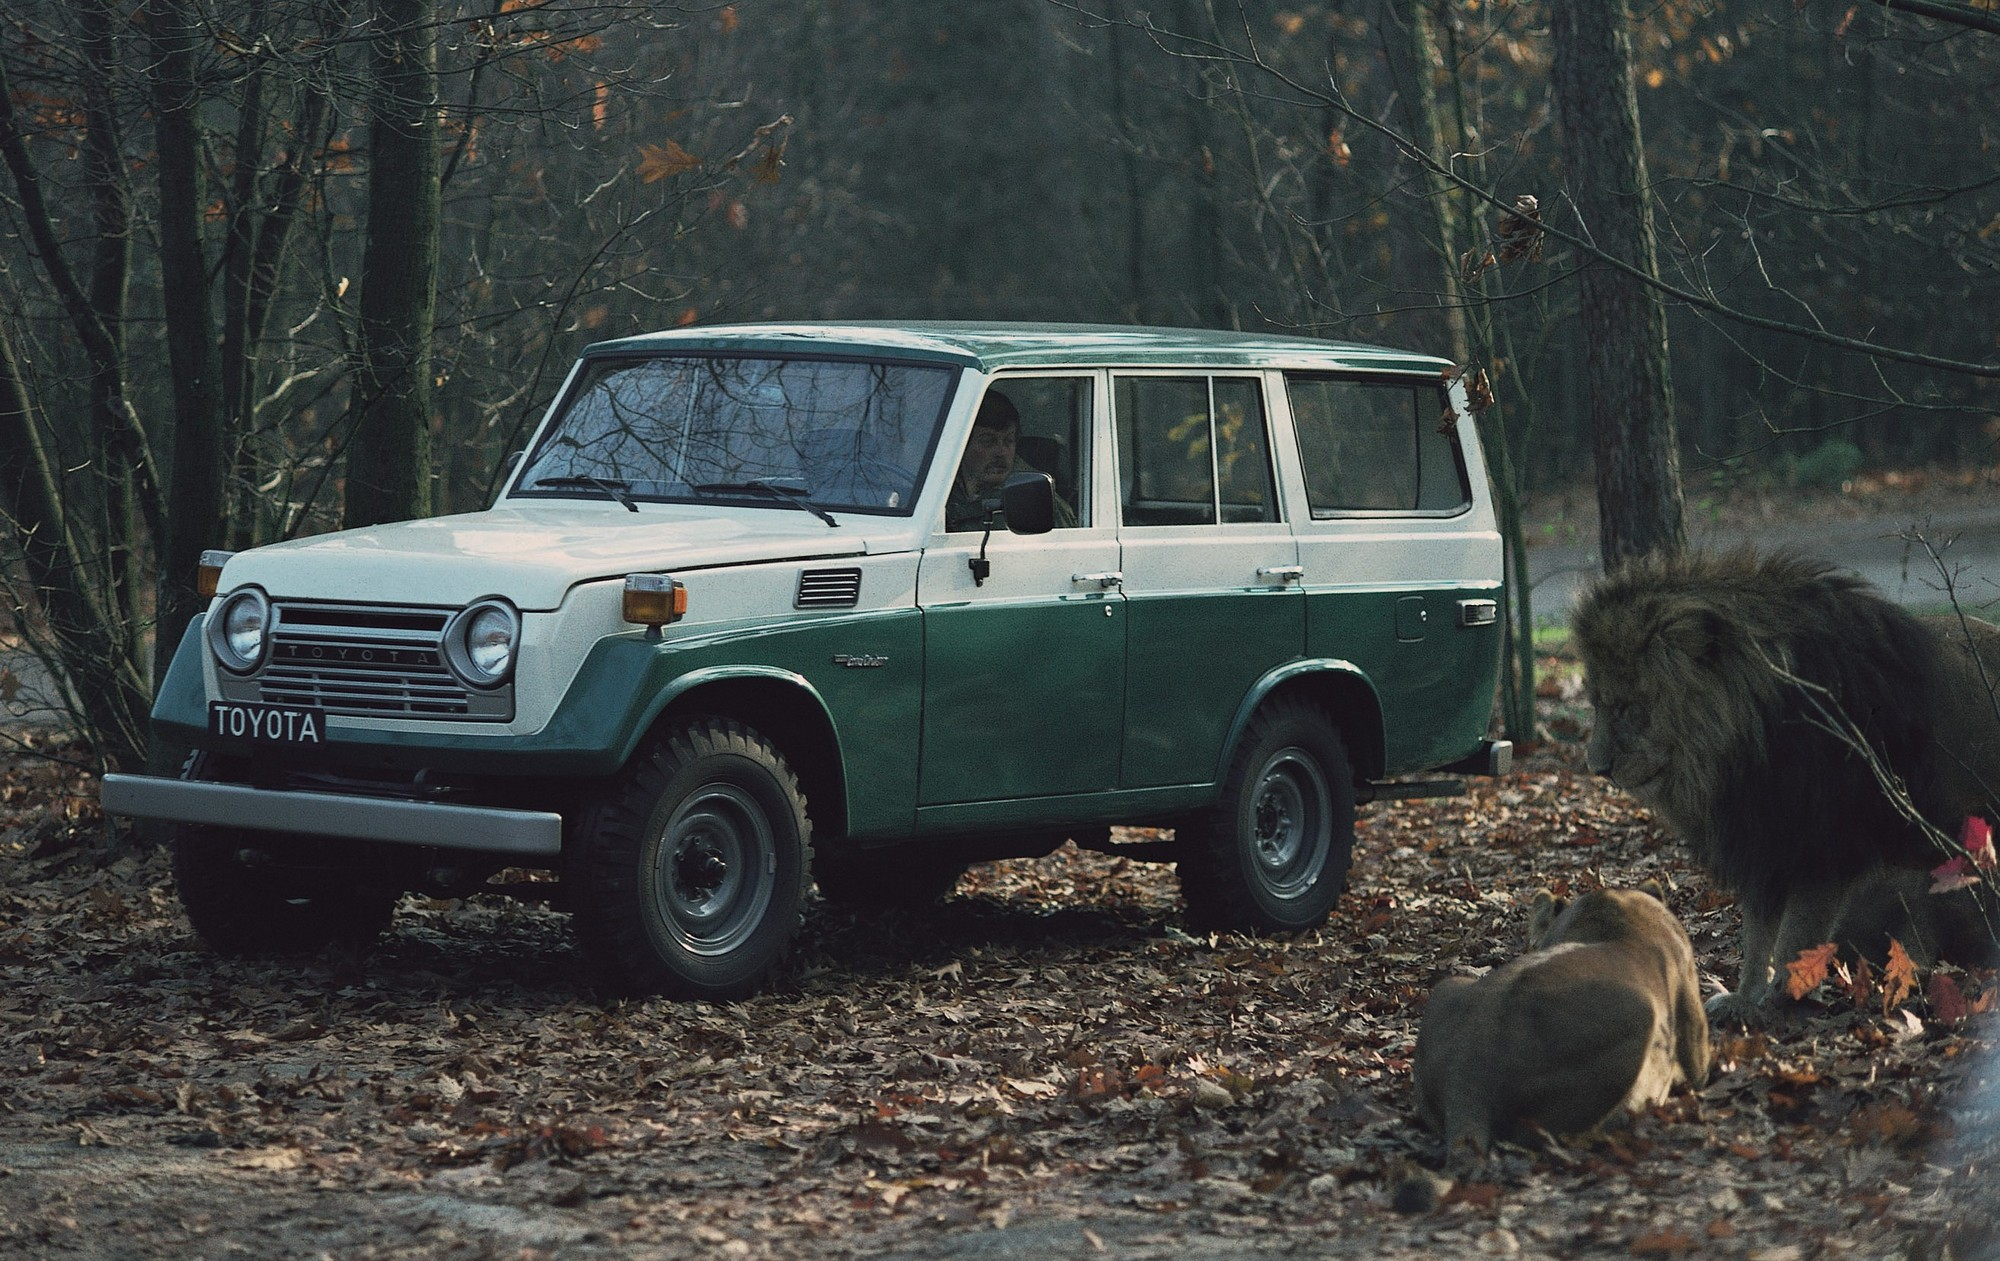 Toyota Land Cruiser 55 4.2